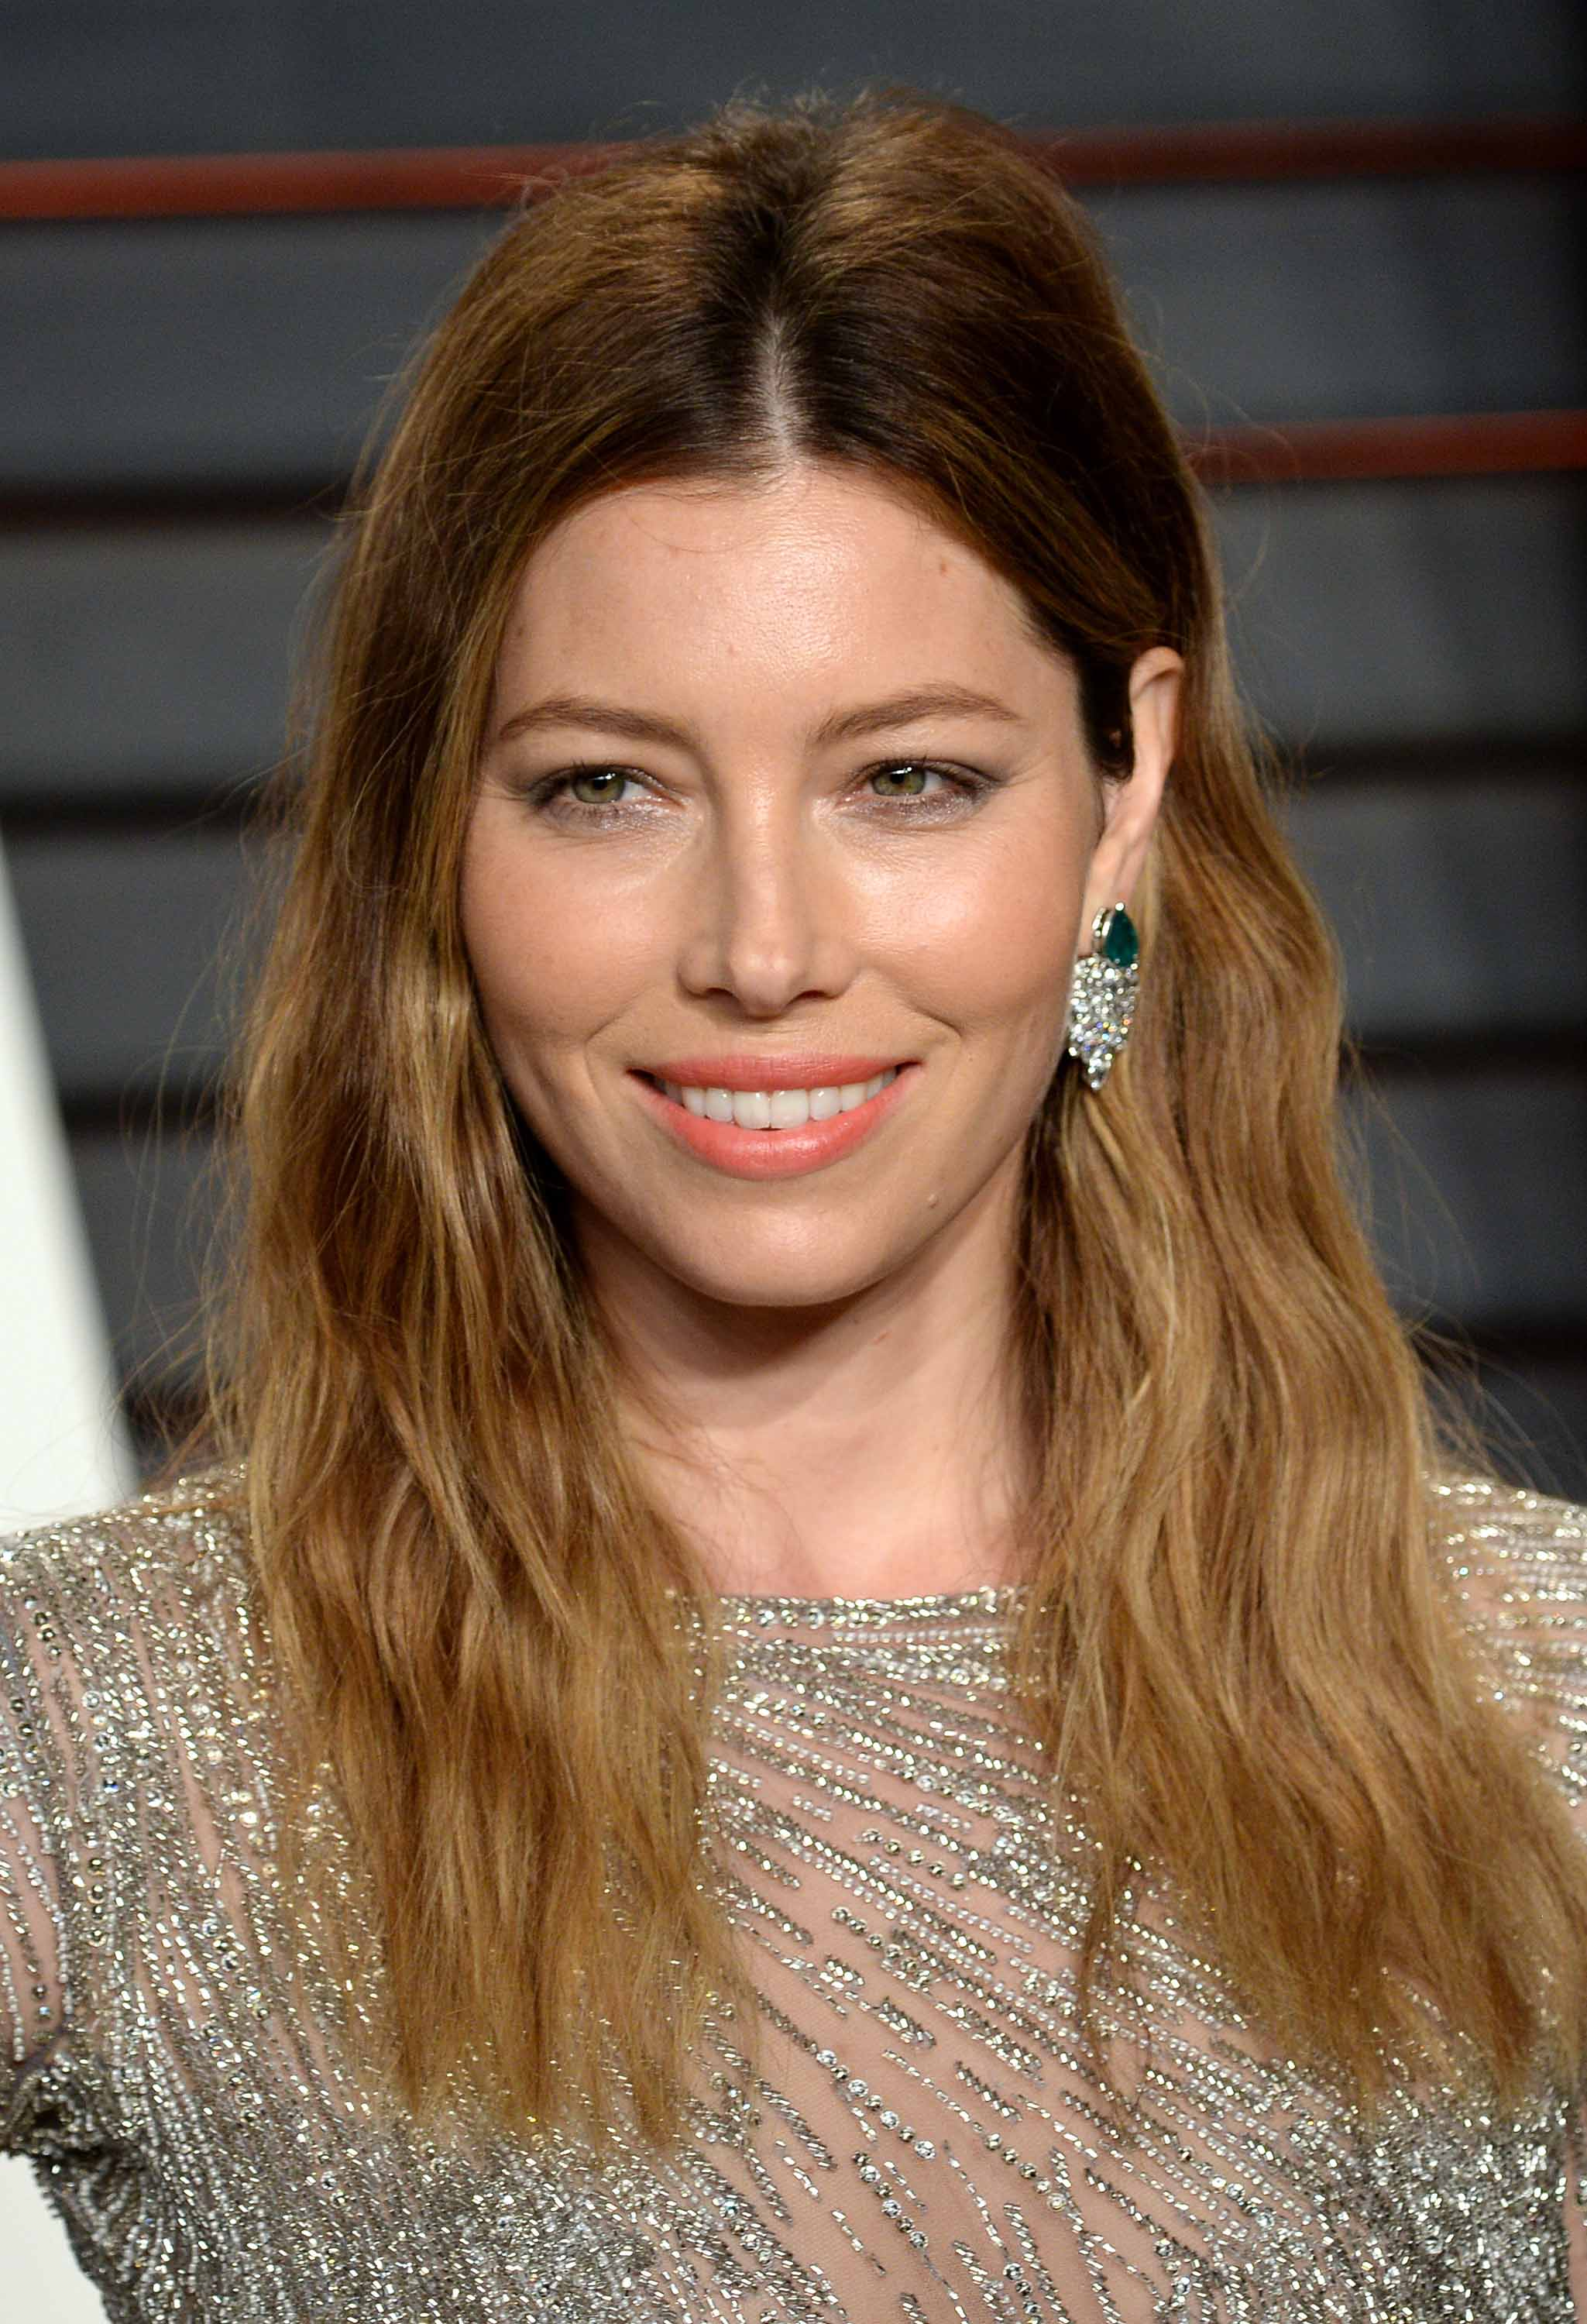 flamboyage-hair-colours-and-styles-jessica-biel